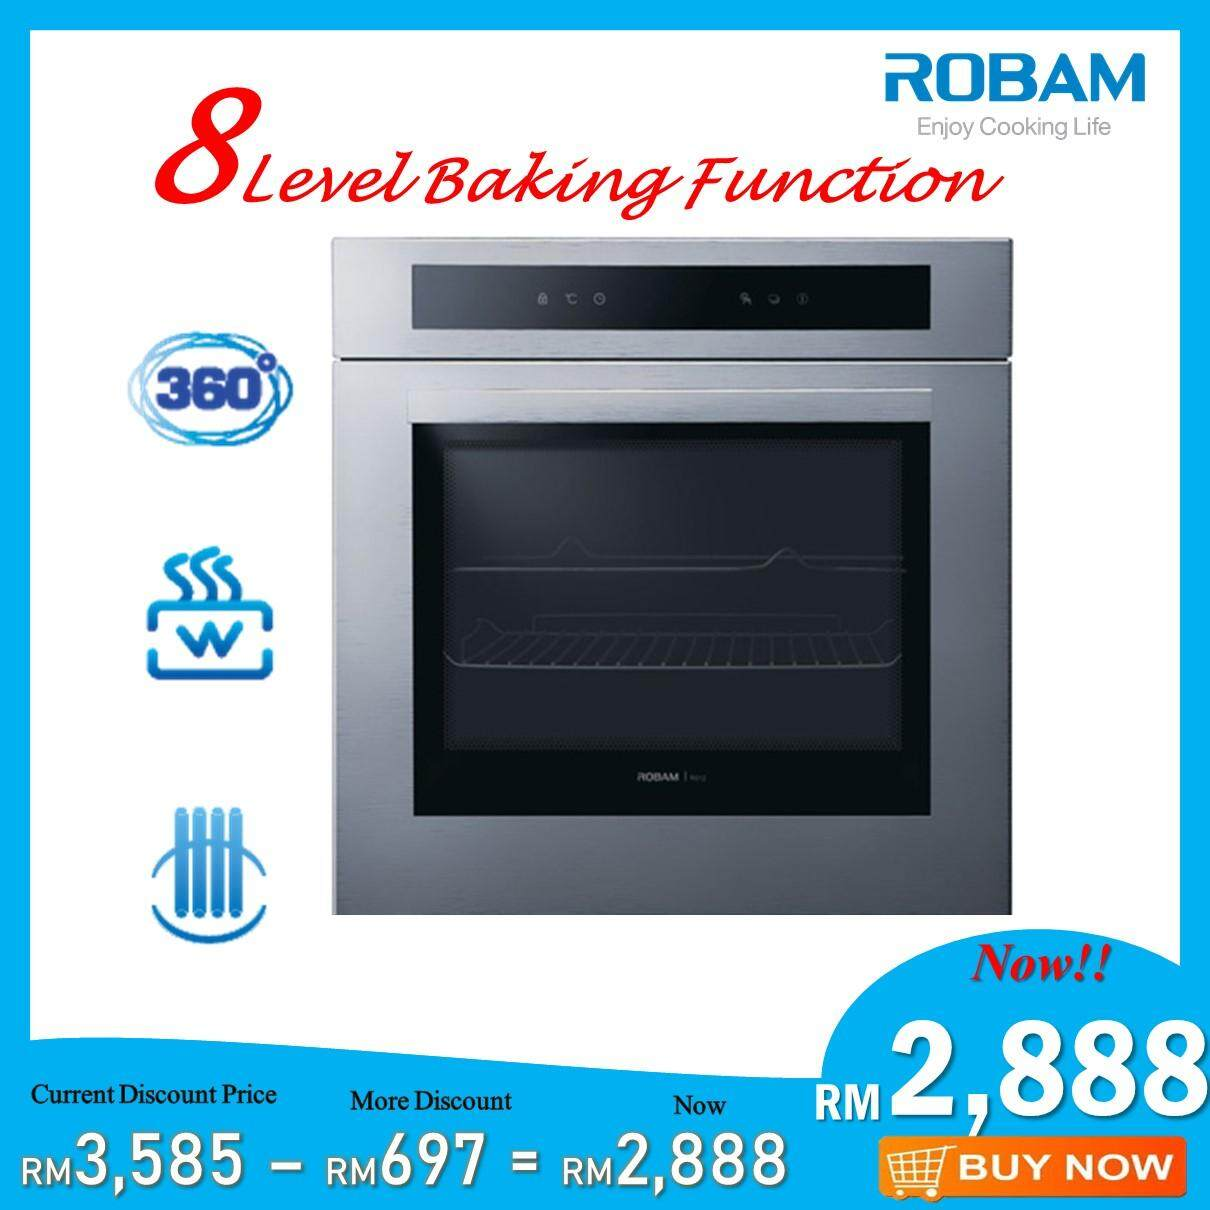 ROBAM R308 70L Built-In Oven with 8 Cooking Programmes